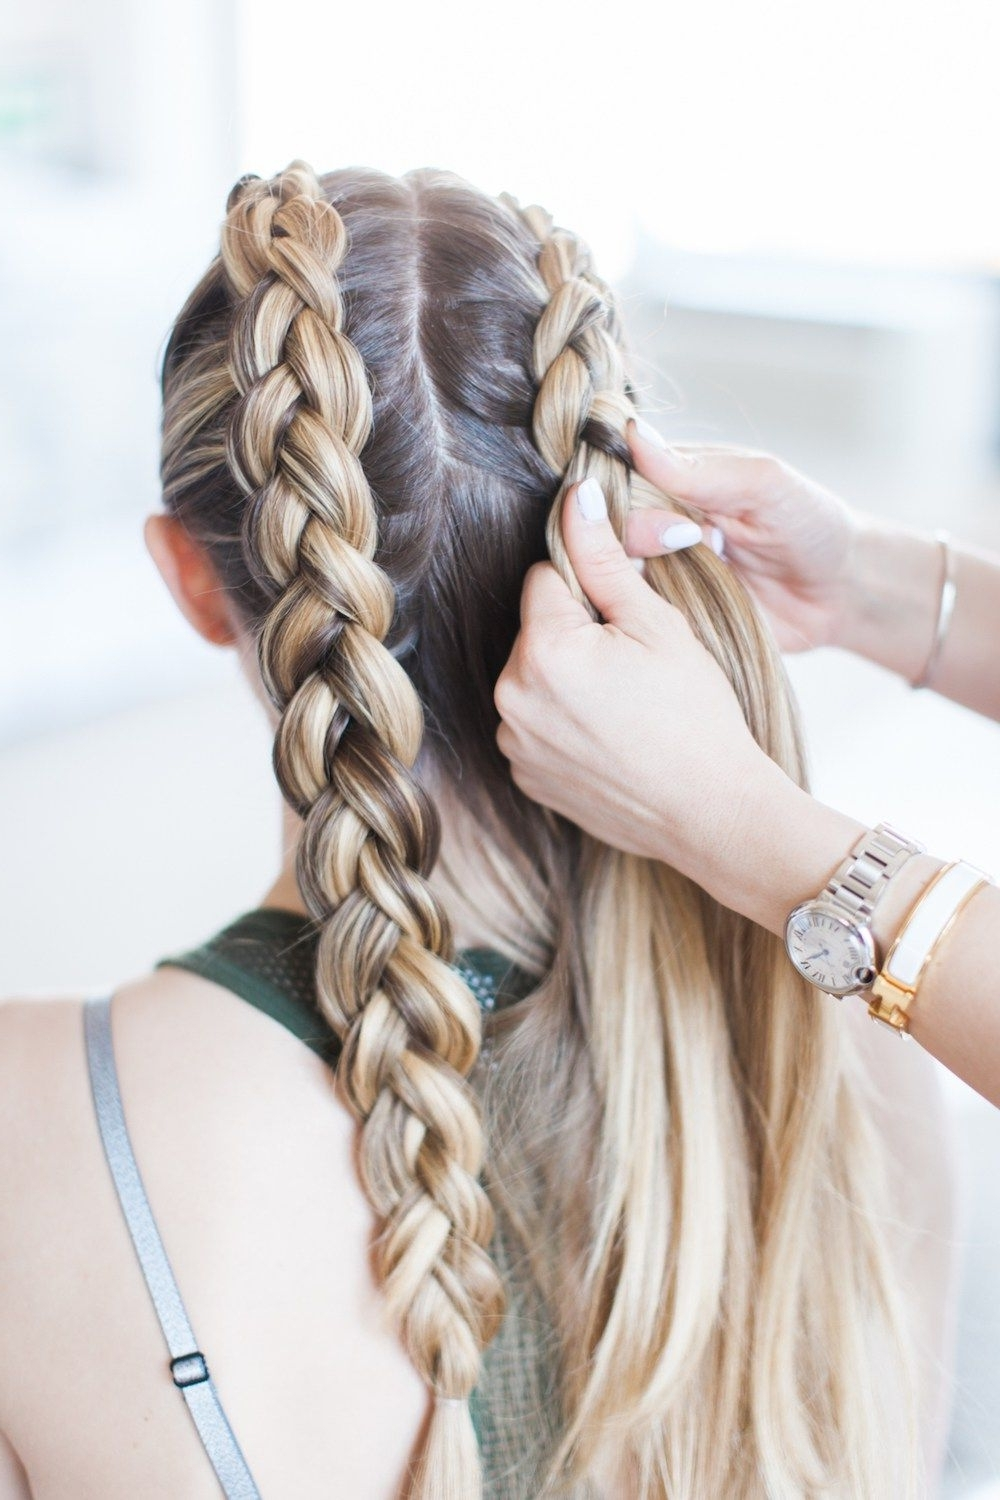 Trendy Blonde Ponytails With Double Braid With Regard To Master These Double Dutch Braids In 3 Steps & Less Than 5 Minutes (View 14 of 20)